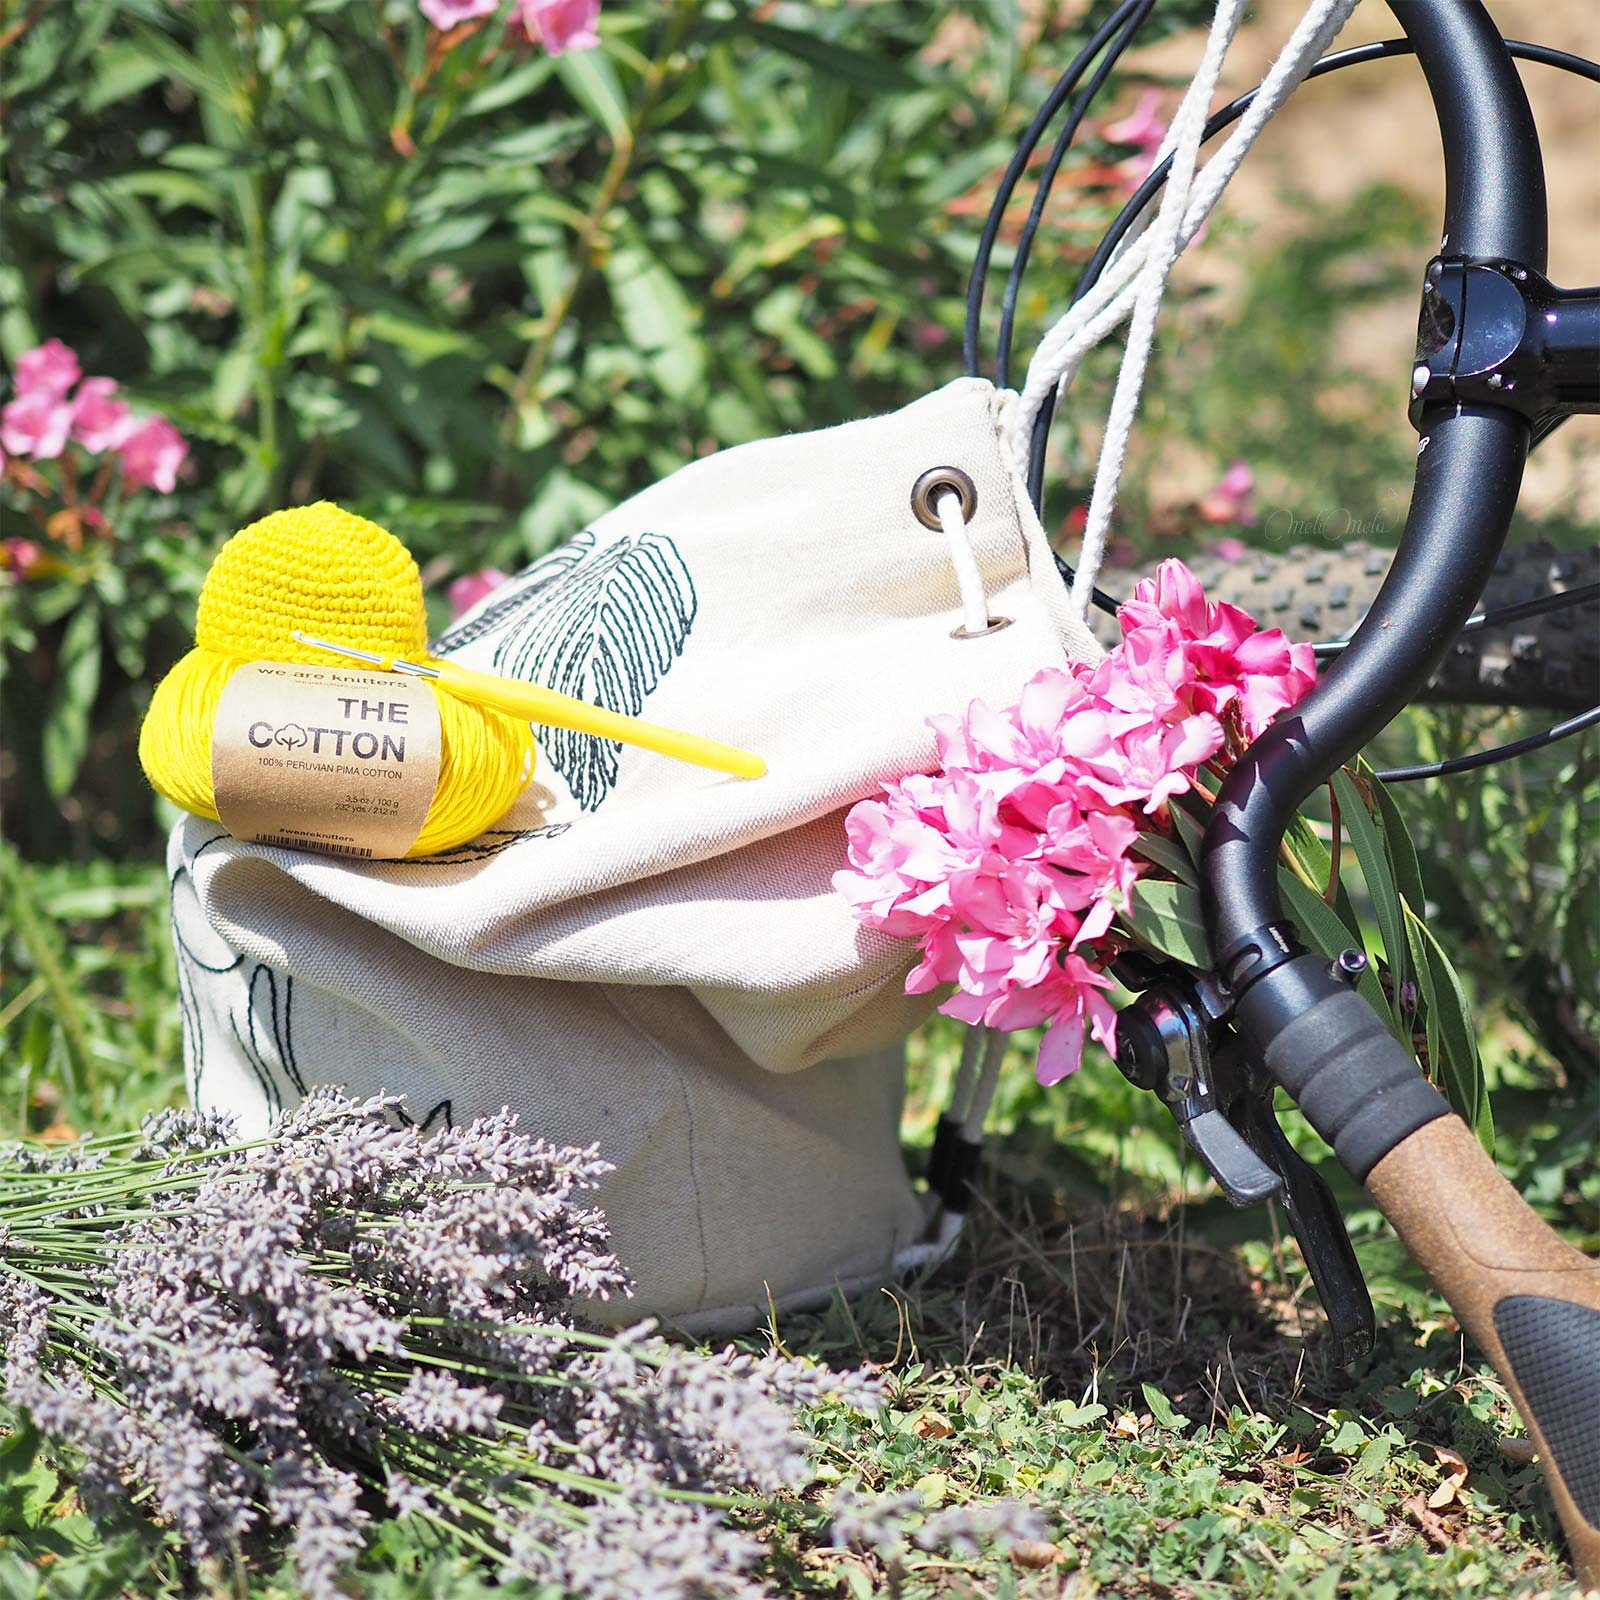 summermood-bike-flowers-coton-pima-yellow-the-cotton-wool-weareknitters-laboutiquedemelimelo